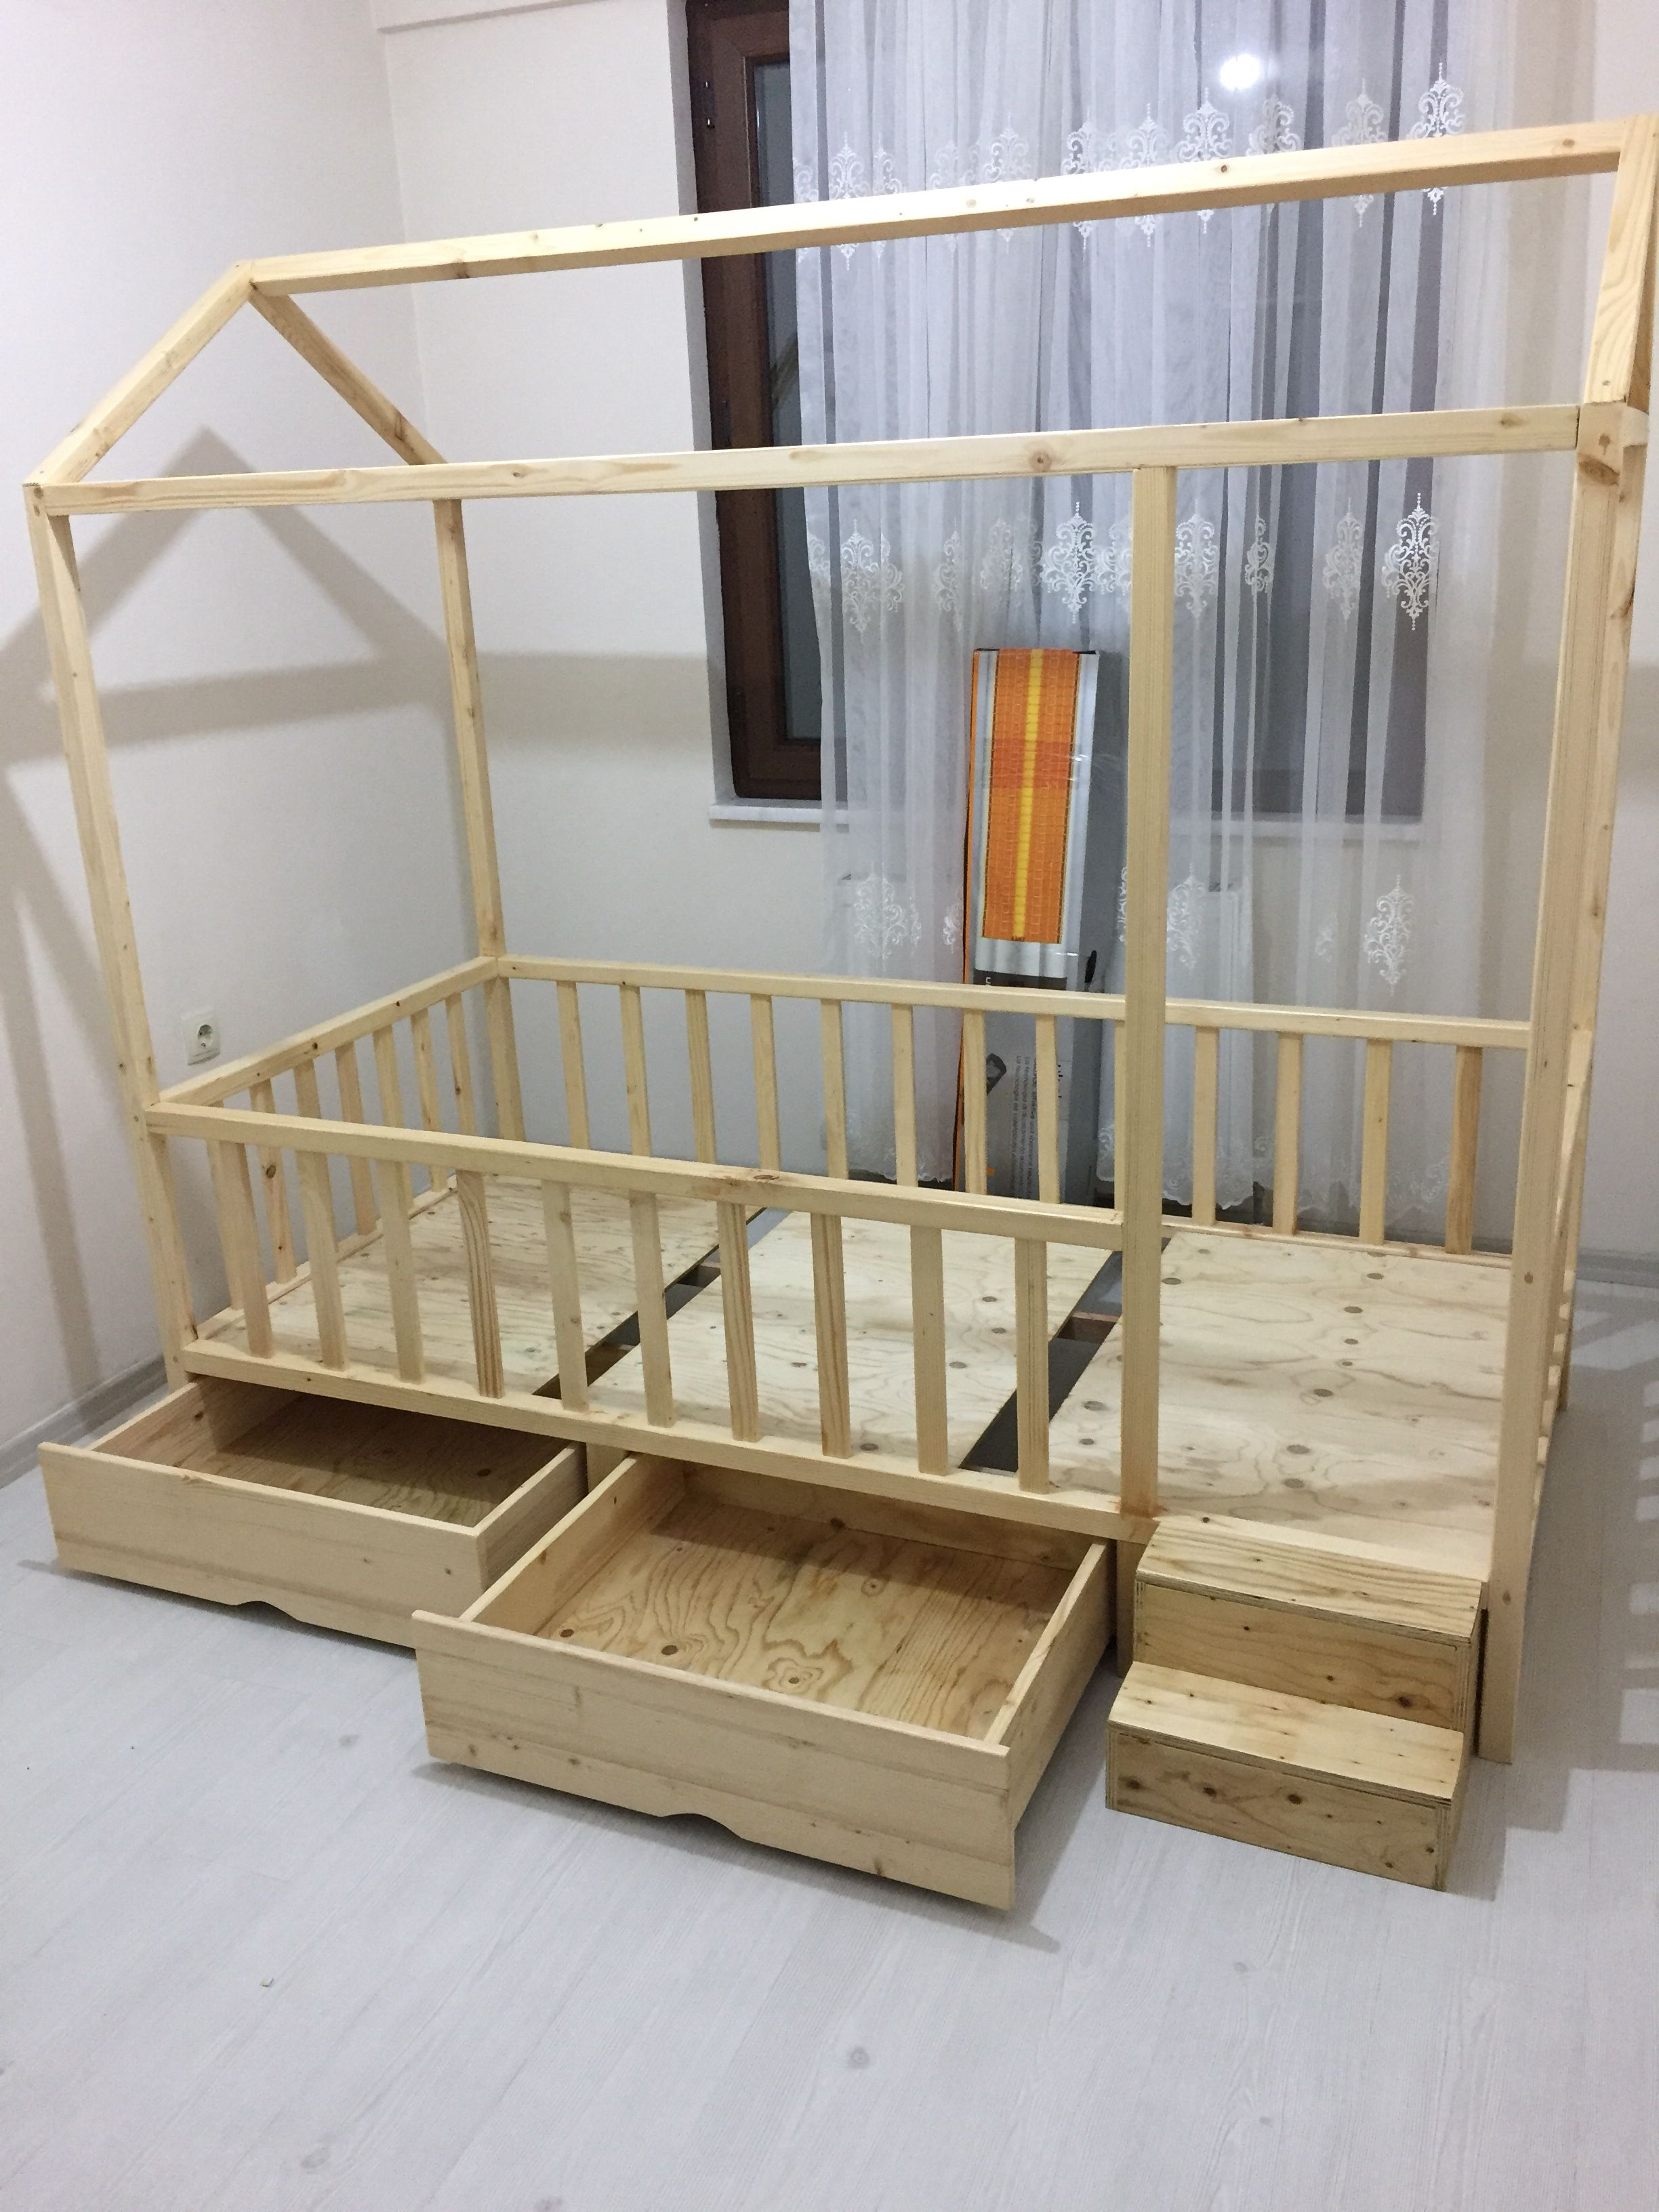 Children's bed frame #toddlerrooms